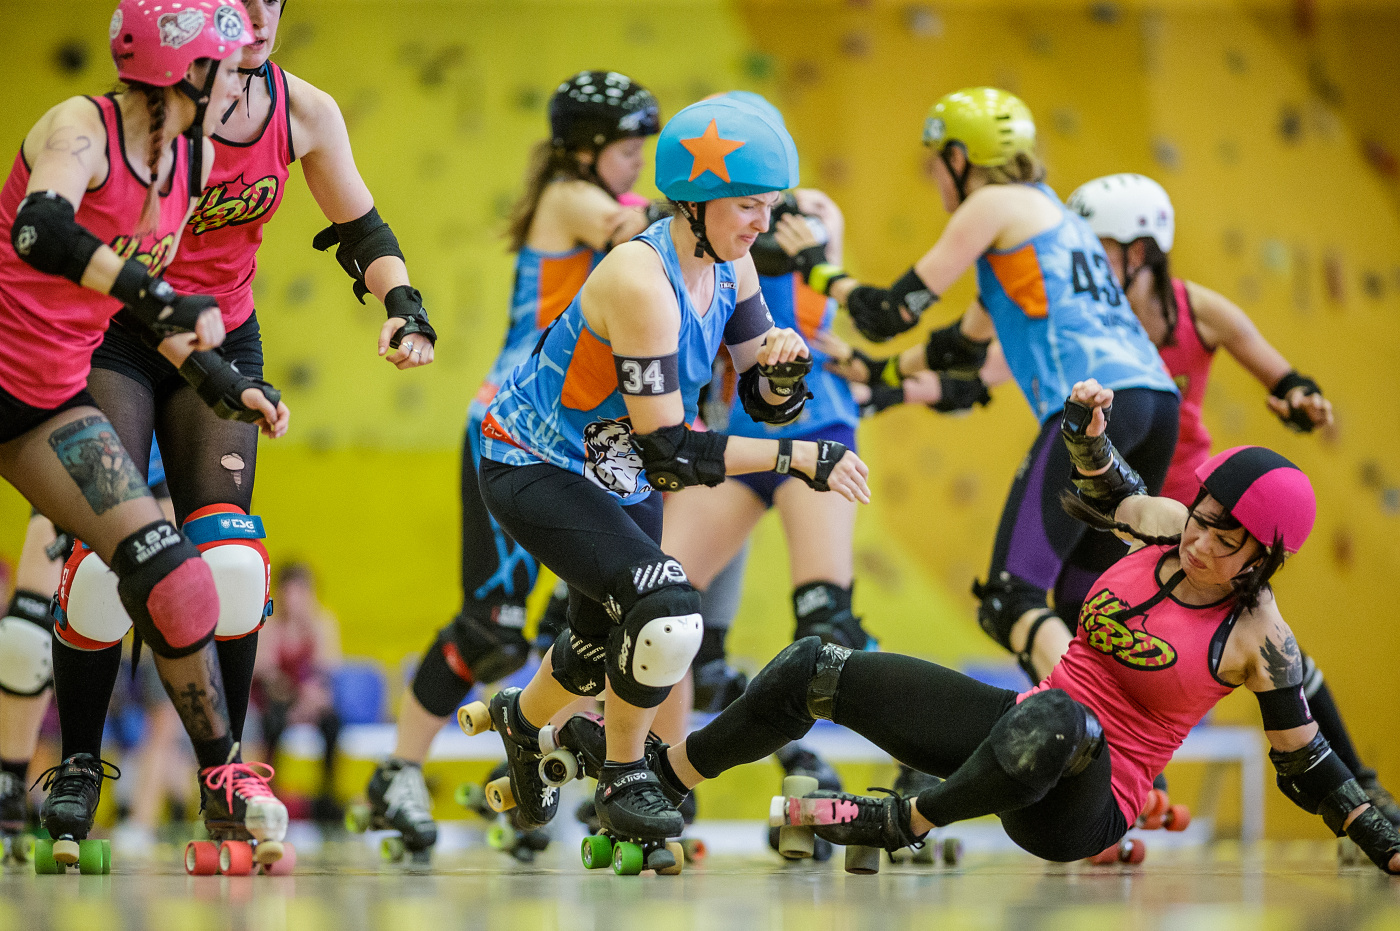 RollerDerby2017_32